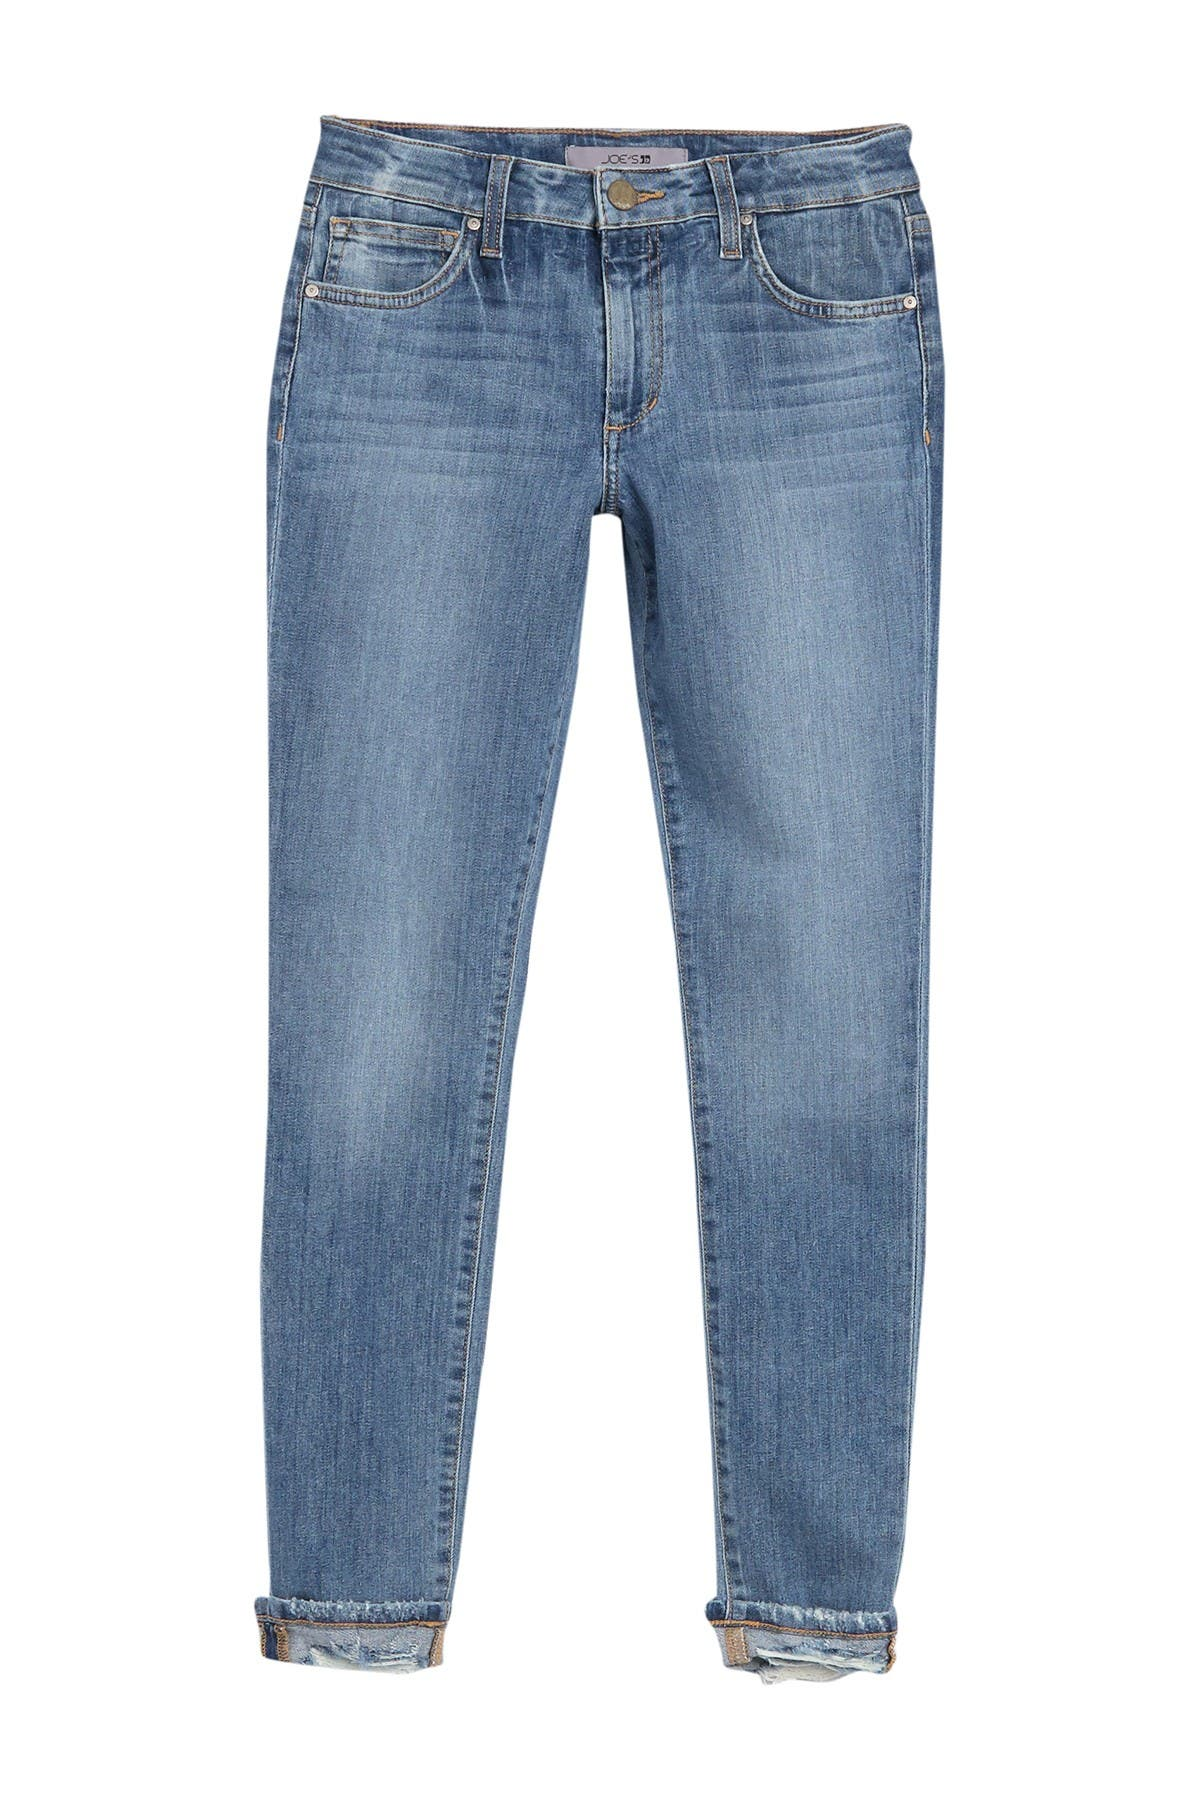 Image of Joe's Jeans High Rise Curvy Skinny Jeans